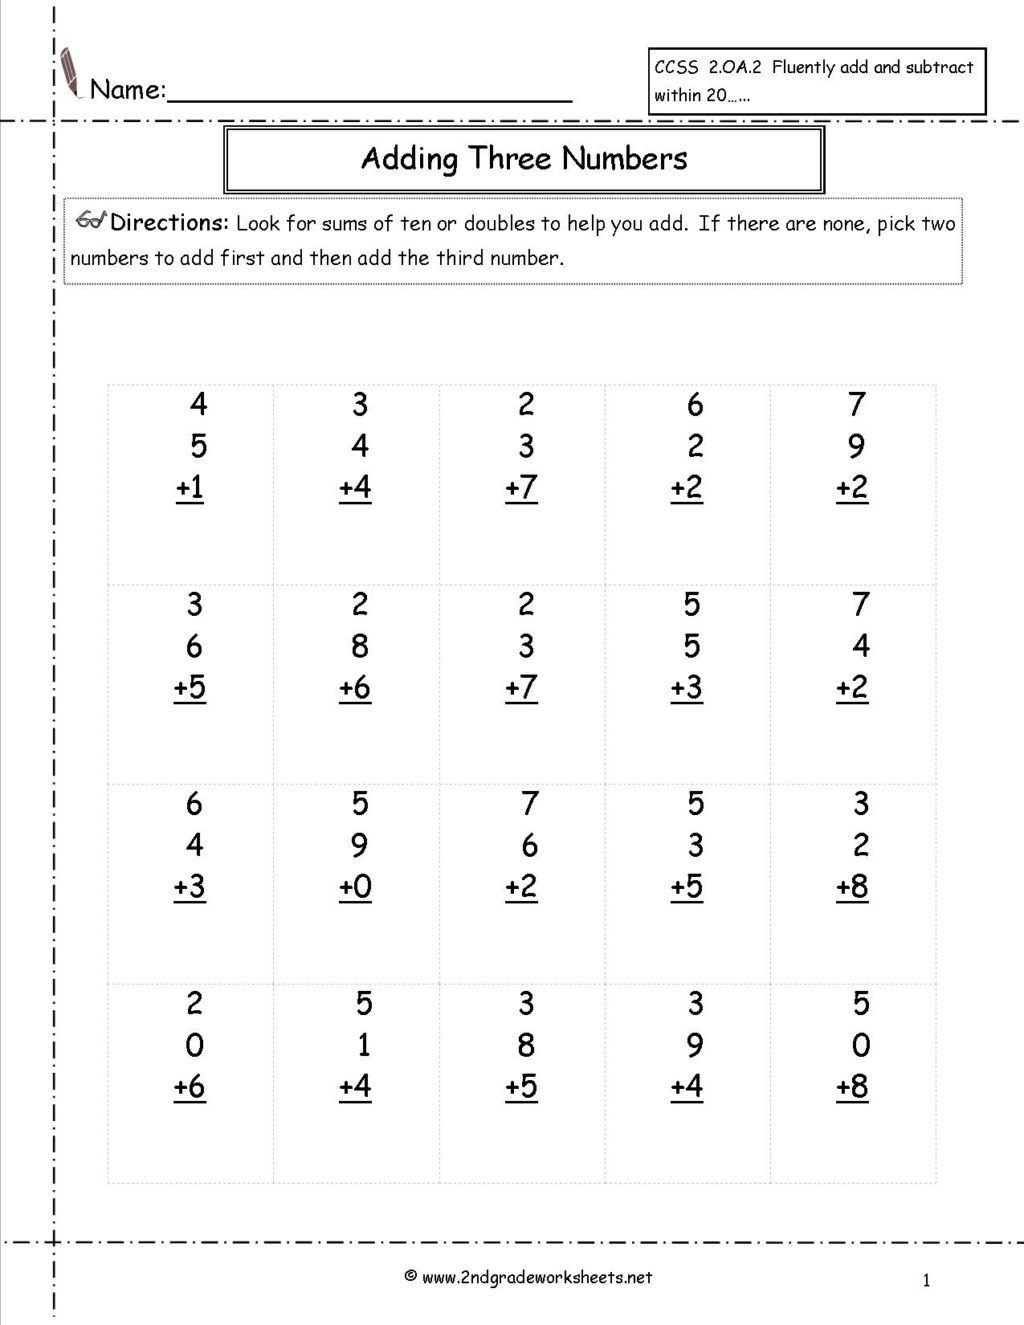 Adding Doubles Worksheet 2nd Grade Worksheet 2nd Grade Math Homeworkt Freets and Printouts